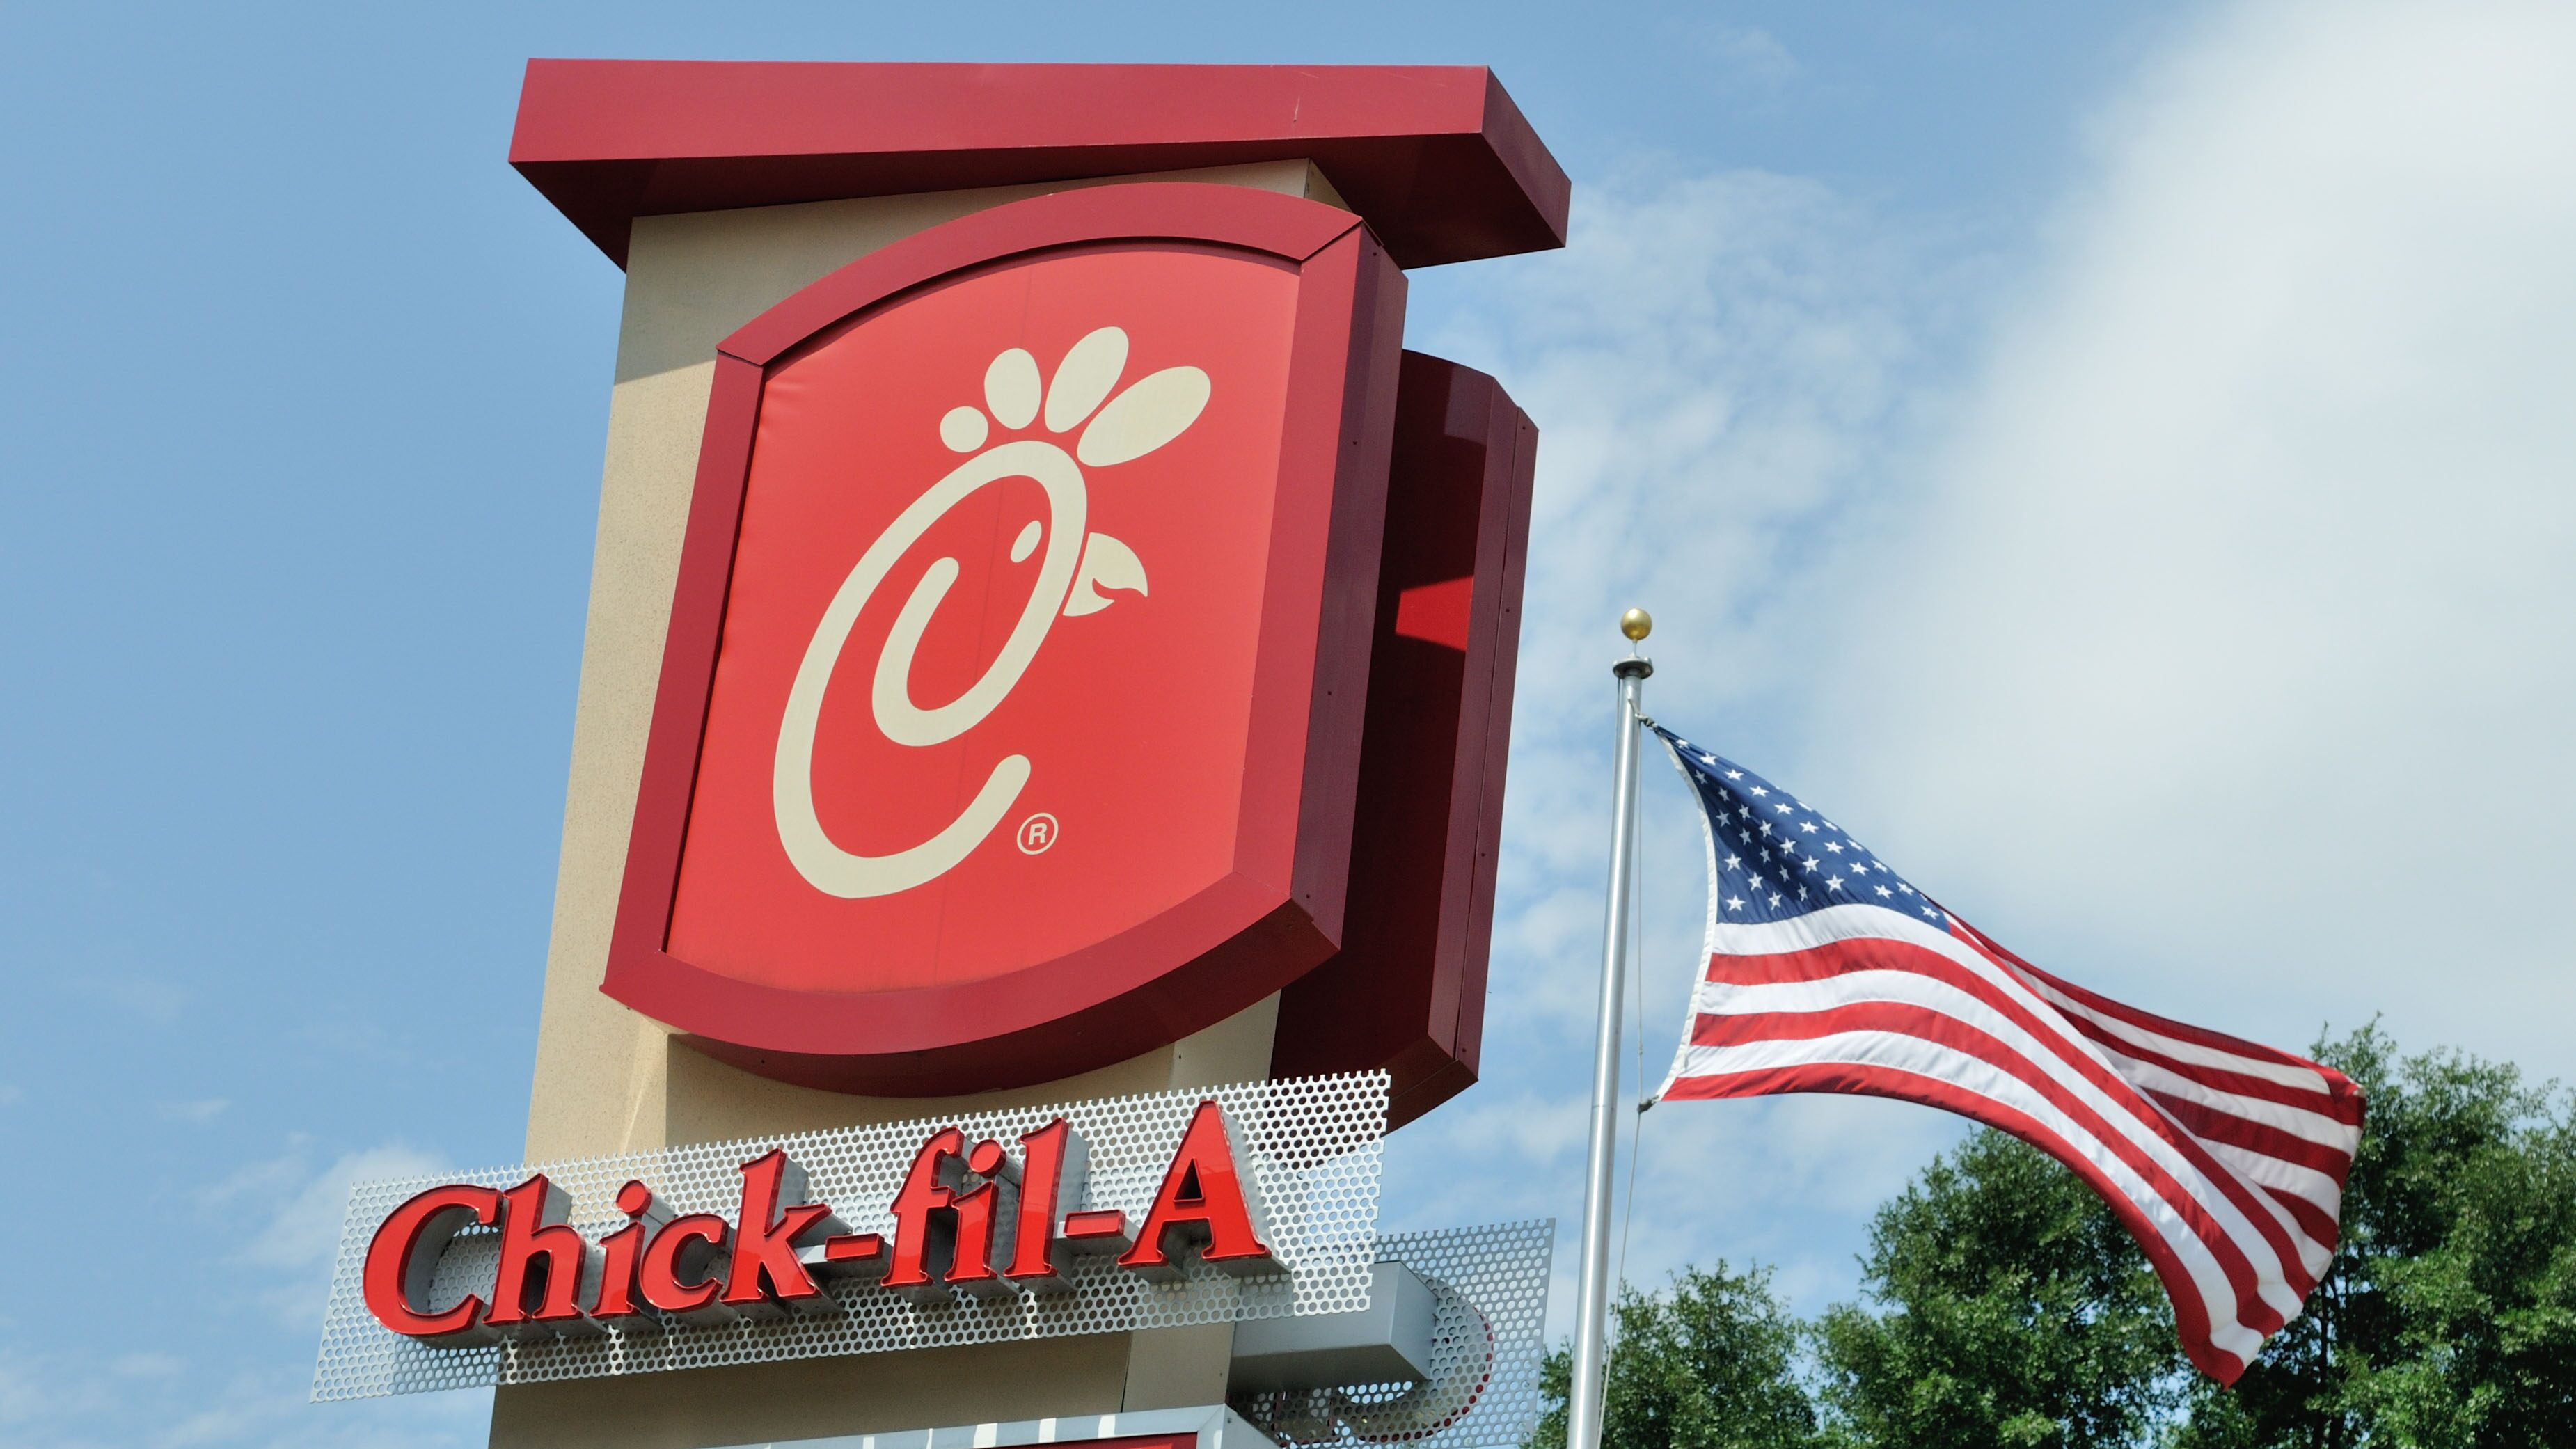 Chick-fil-A makes 500 sandwiches for first responders after Texas shooting spree